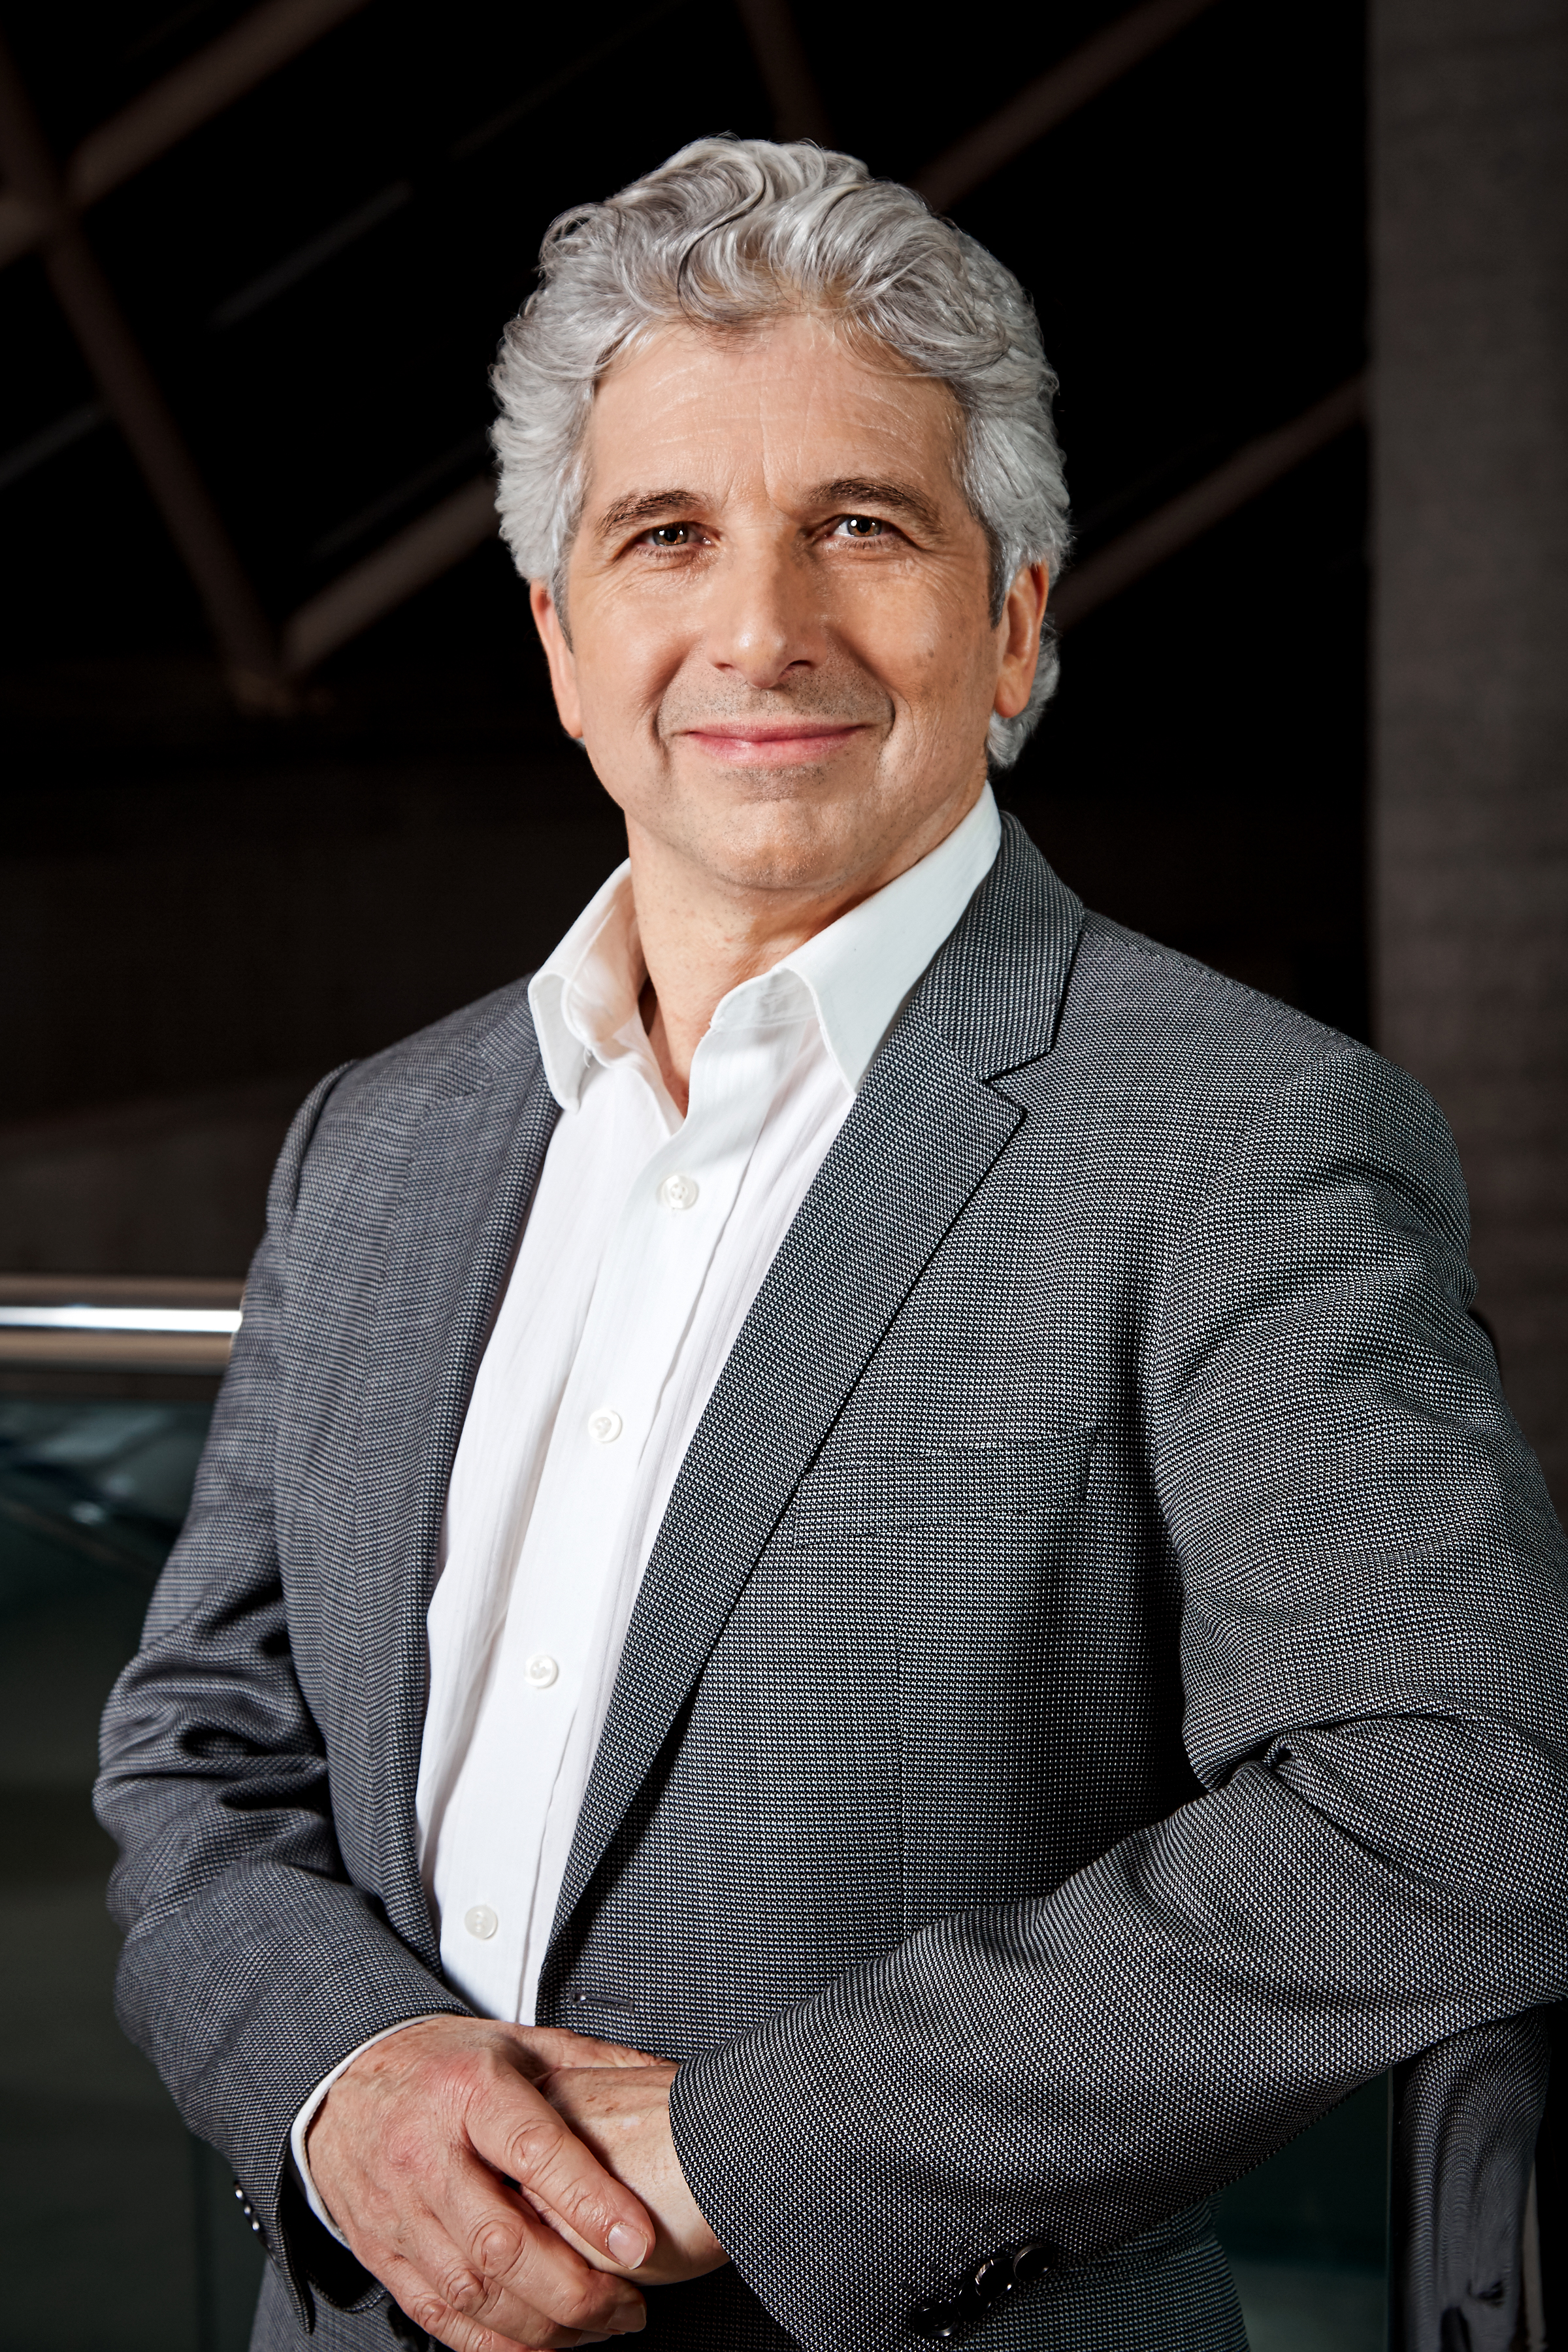 Peter Oundjian, Music Director of the Toronto Symphony Orchestra